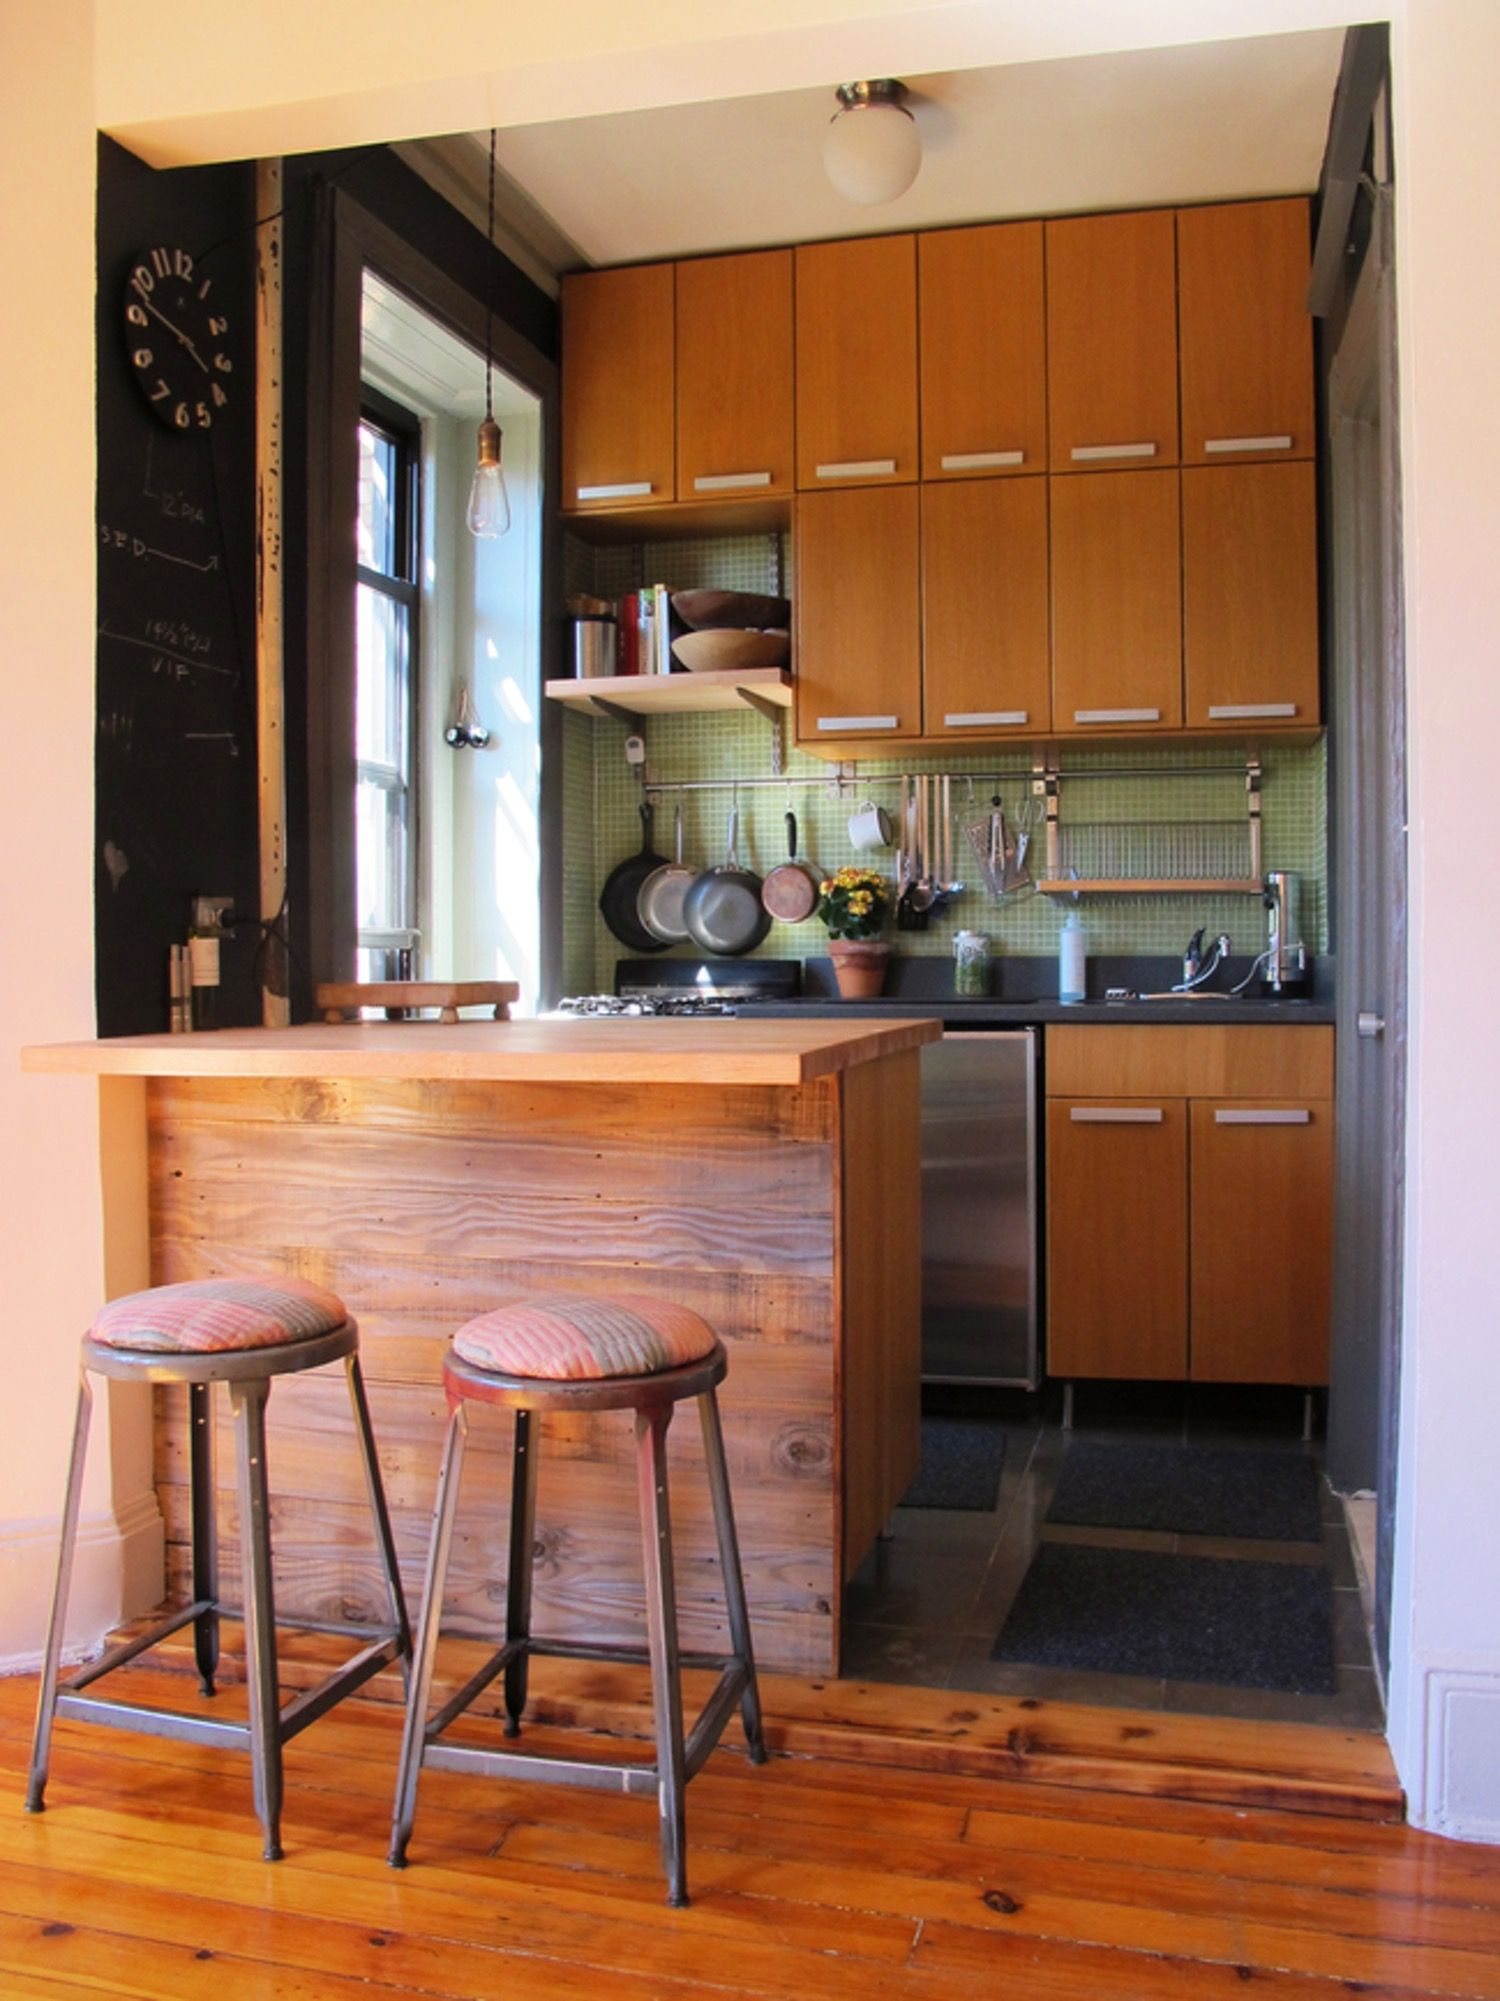 Remodelista\'s Design Awards: Vote Now for the Best Kitchen & Dining ...